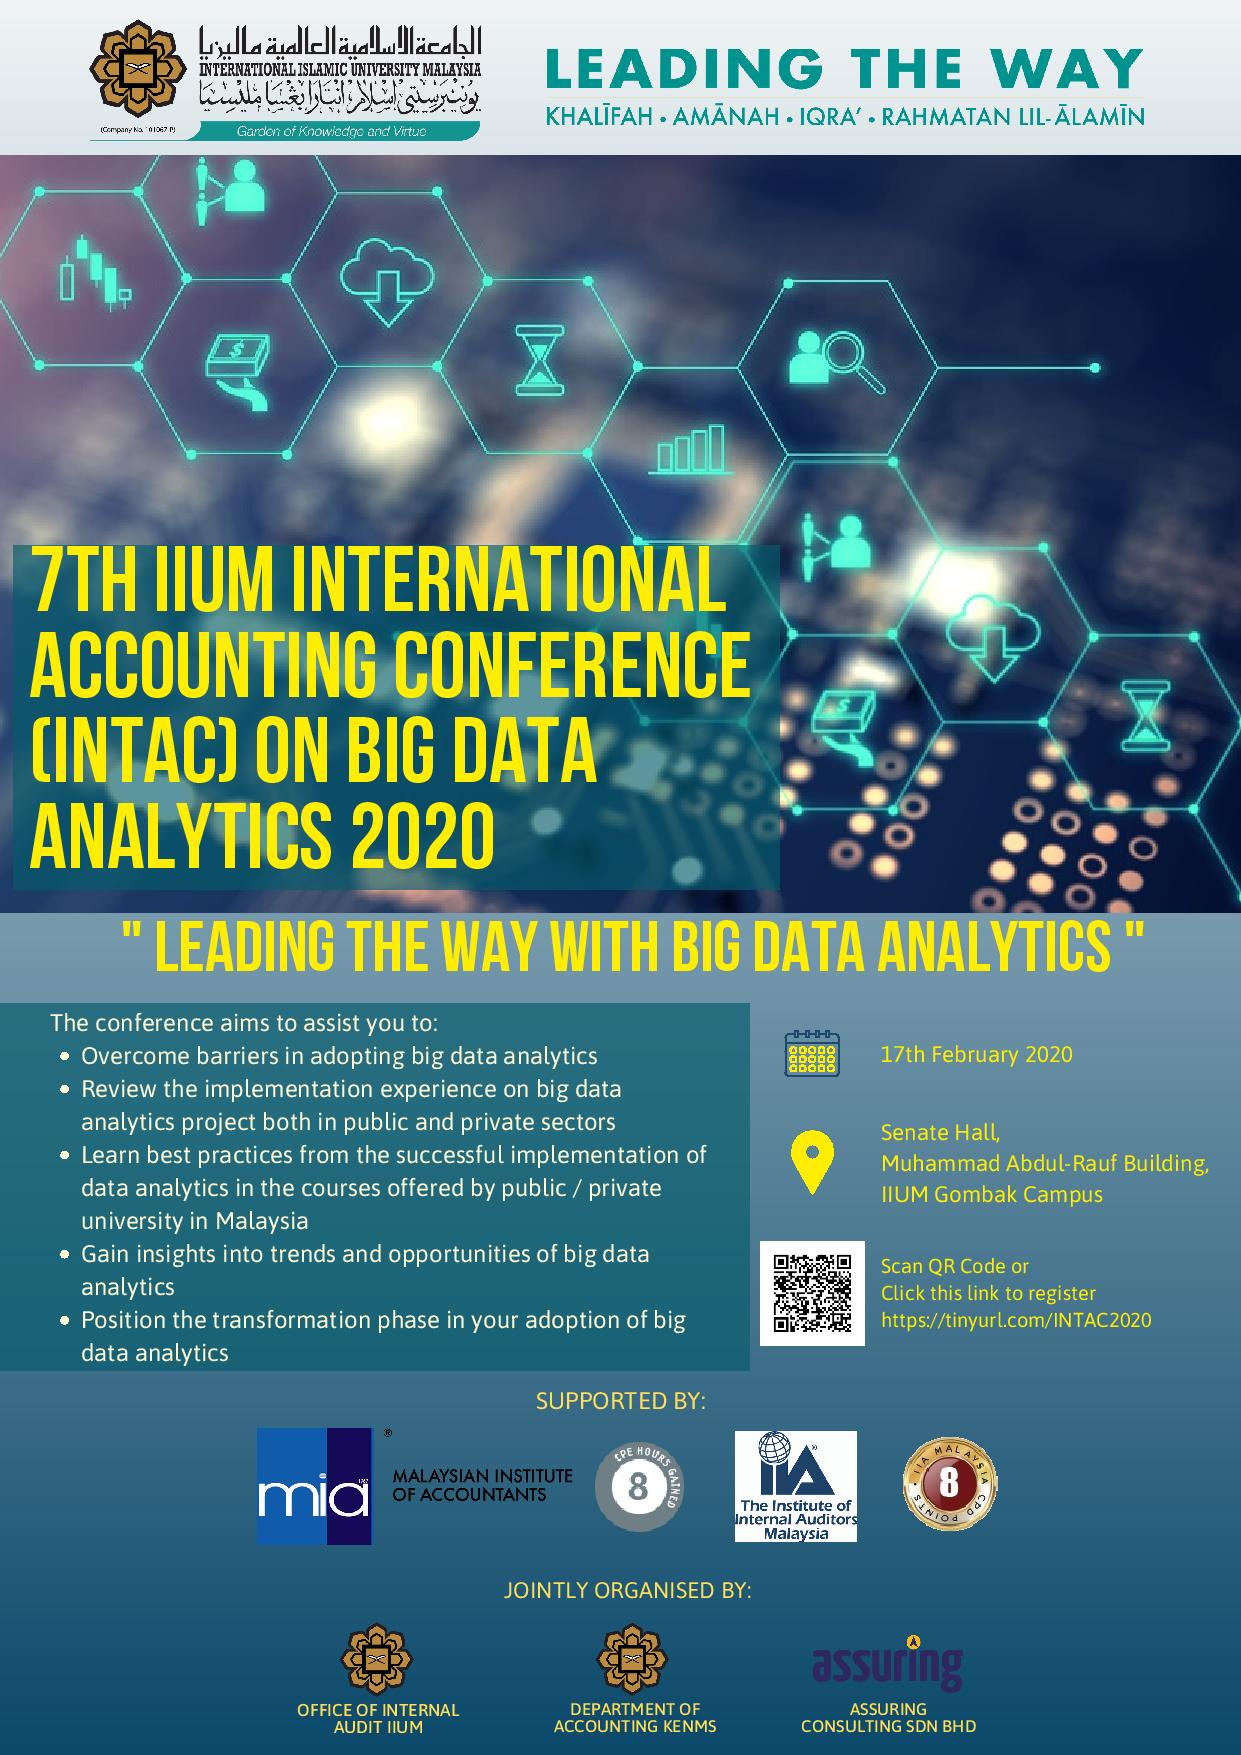 IIUM INTERNATIONAL ACCOUNTING CONFERENCE ON BIG DATA ANALYTICS (INTAC 2020): LEADING THE WAY WITH BIG DATA ANALYTICS